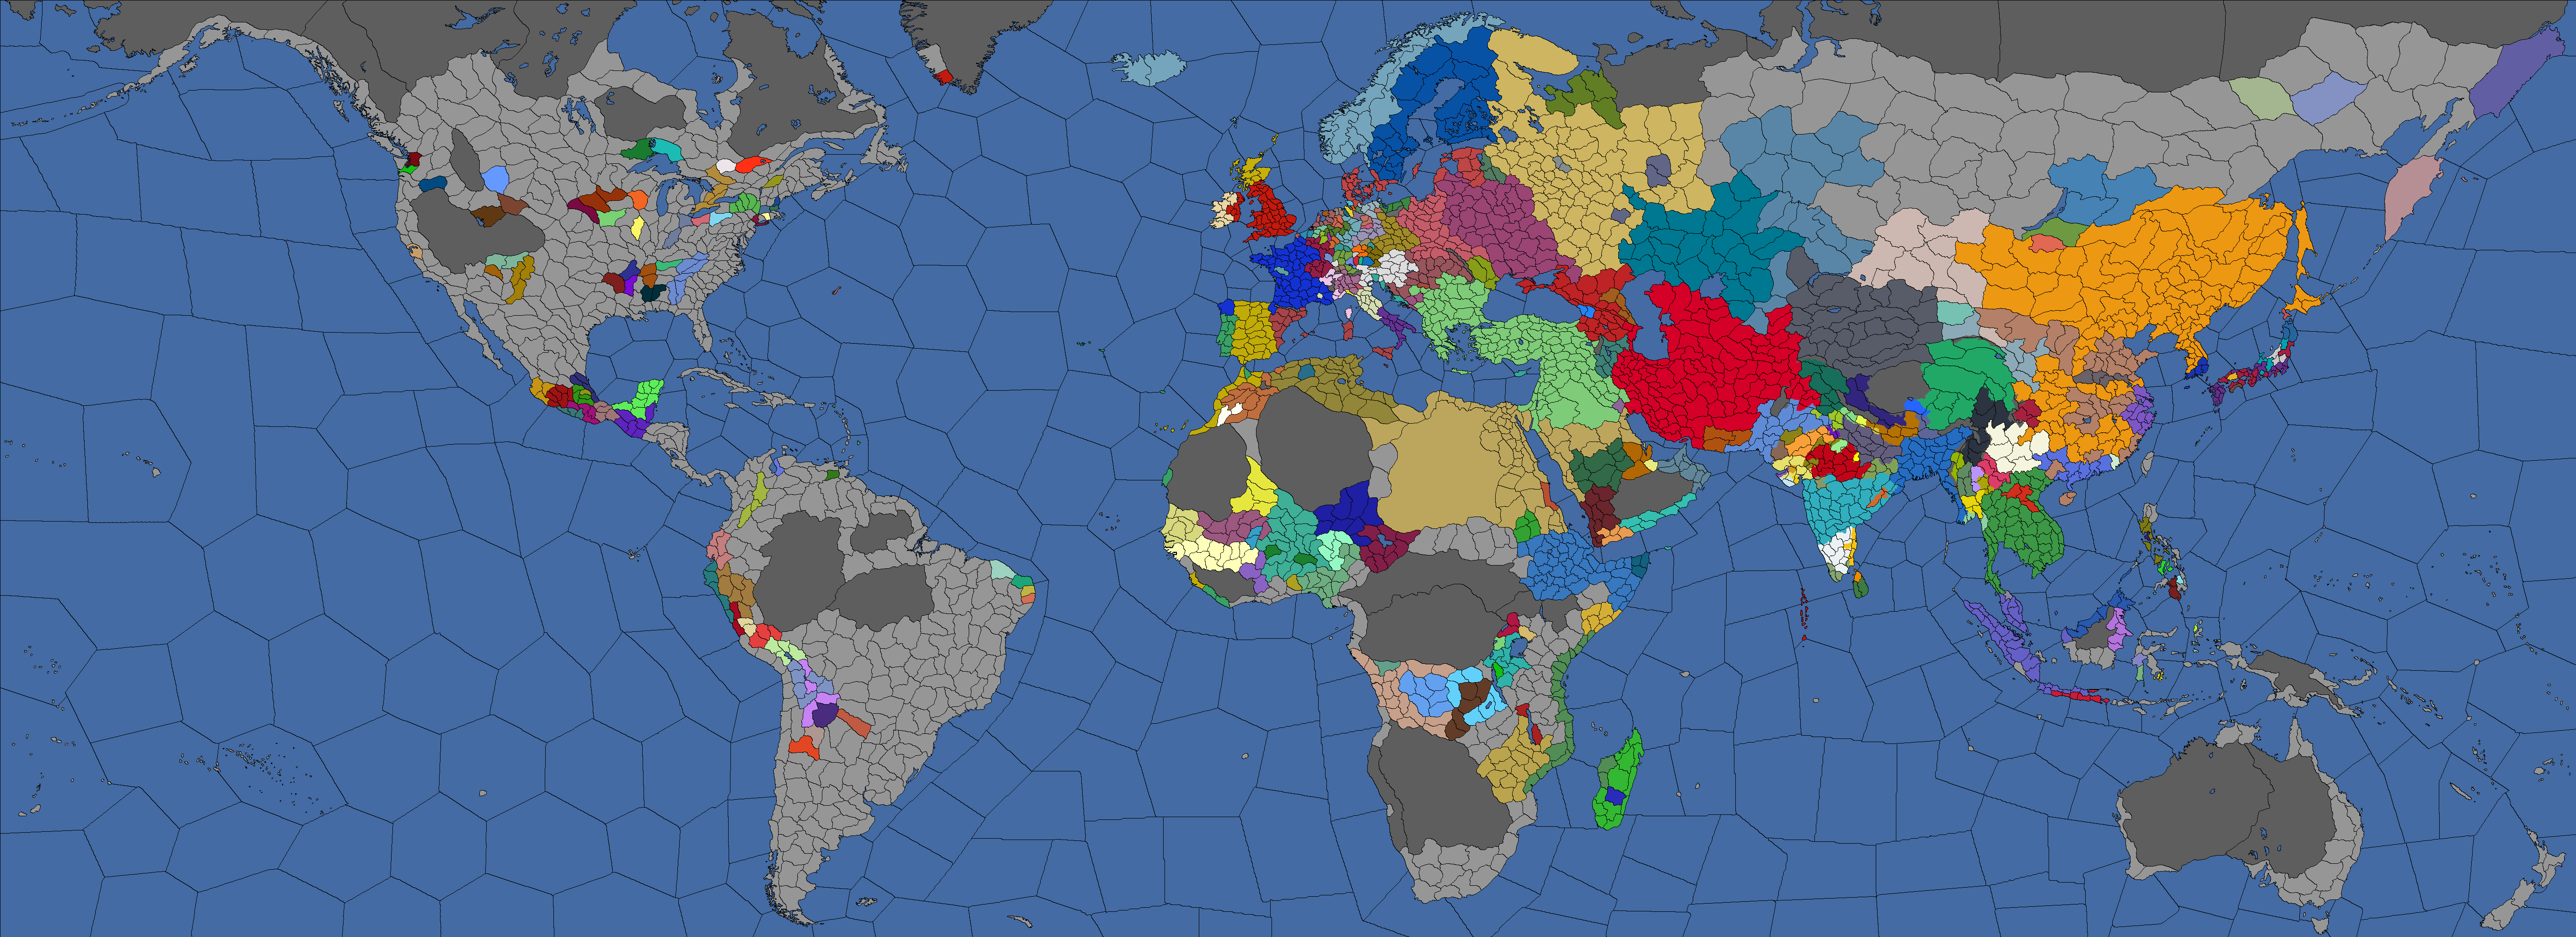 eu4_map_POL_1496_01_01_1.jpg